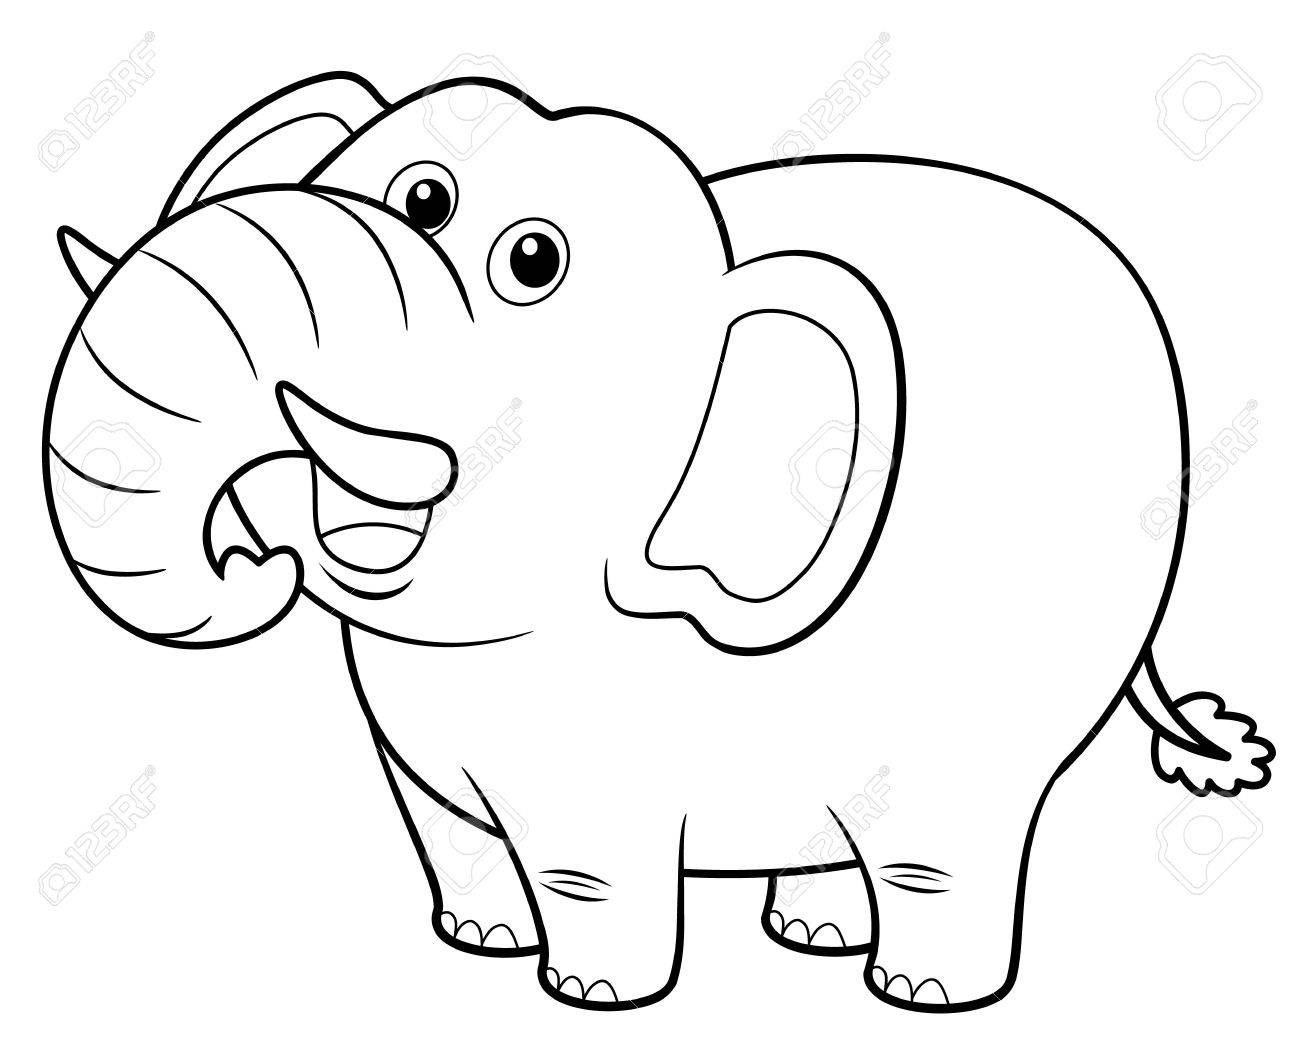 Illustration Of Cartoon Elephant - Coloring Book Royalty Free ...